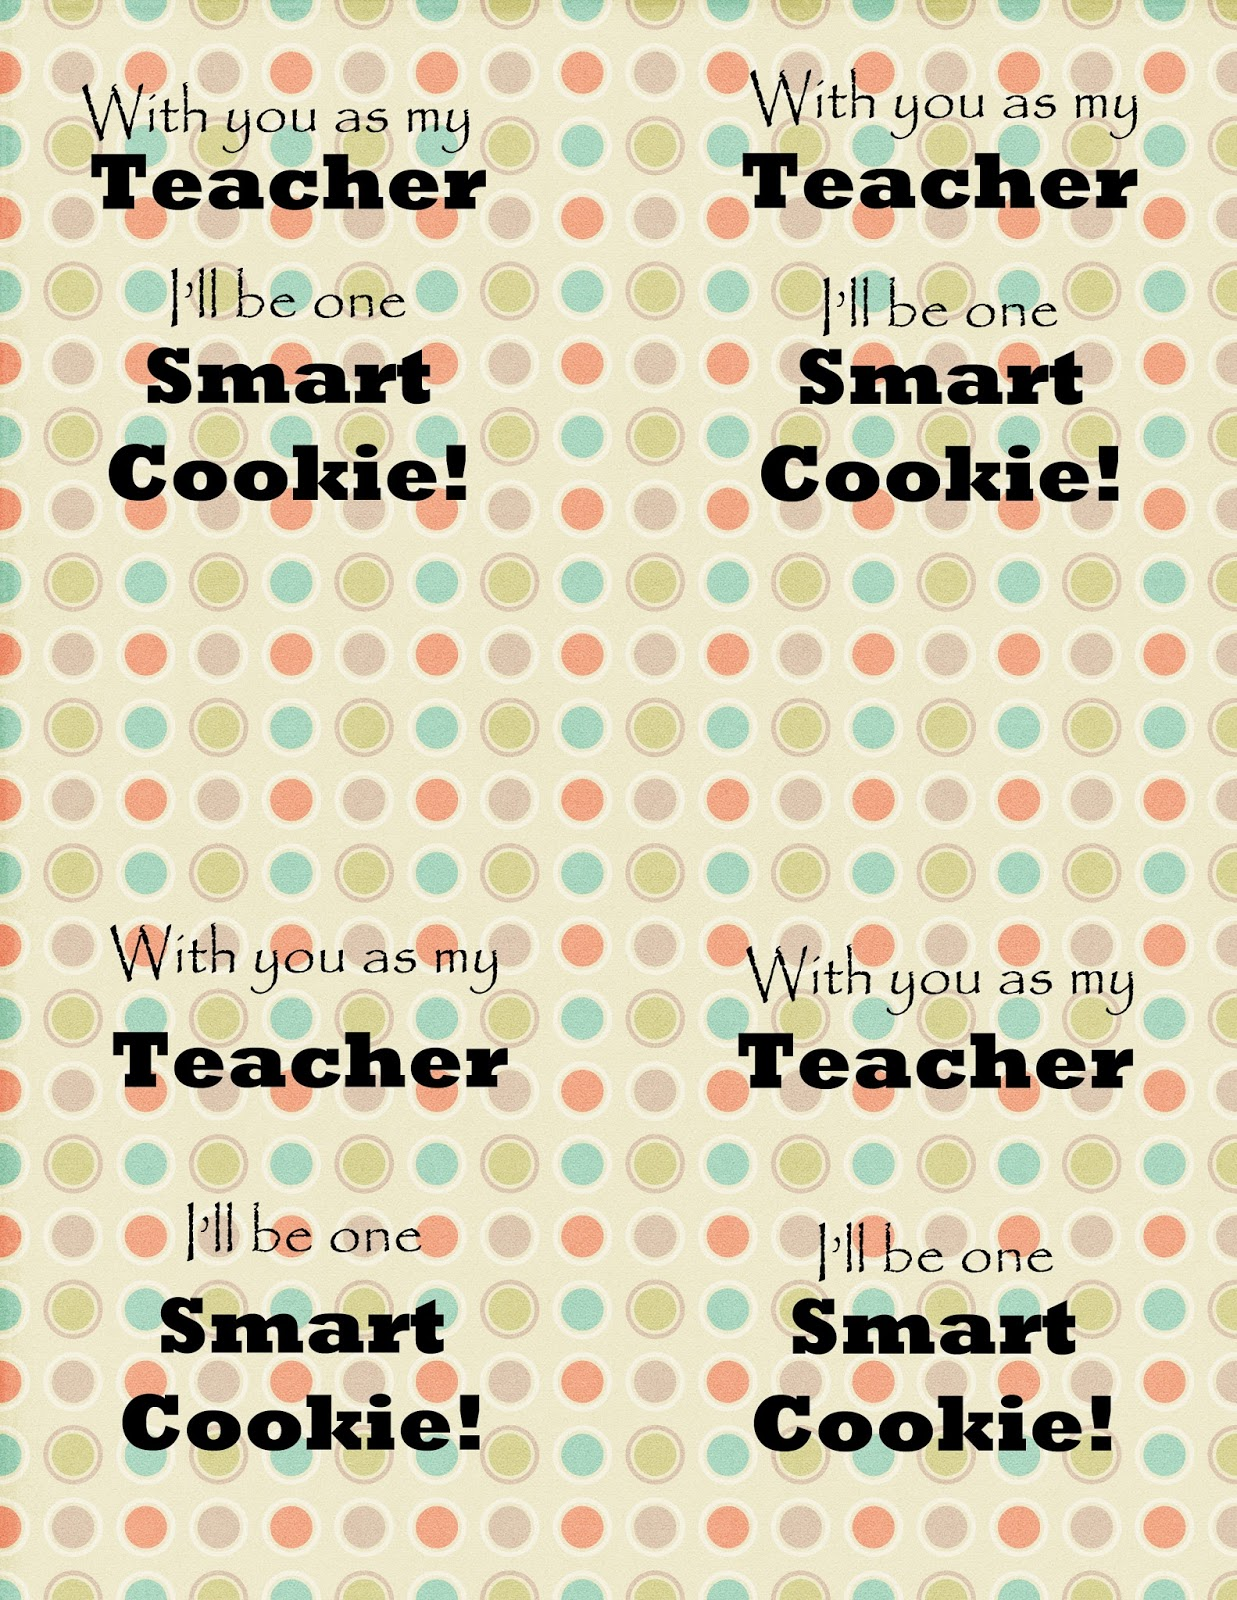 gloriously made back to school teacher gift if you would like to make this same treat for your child s teacher you can go below the image below and click the word here to print